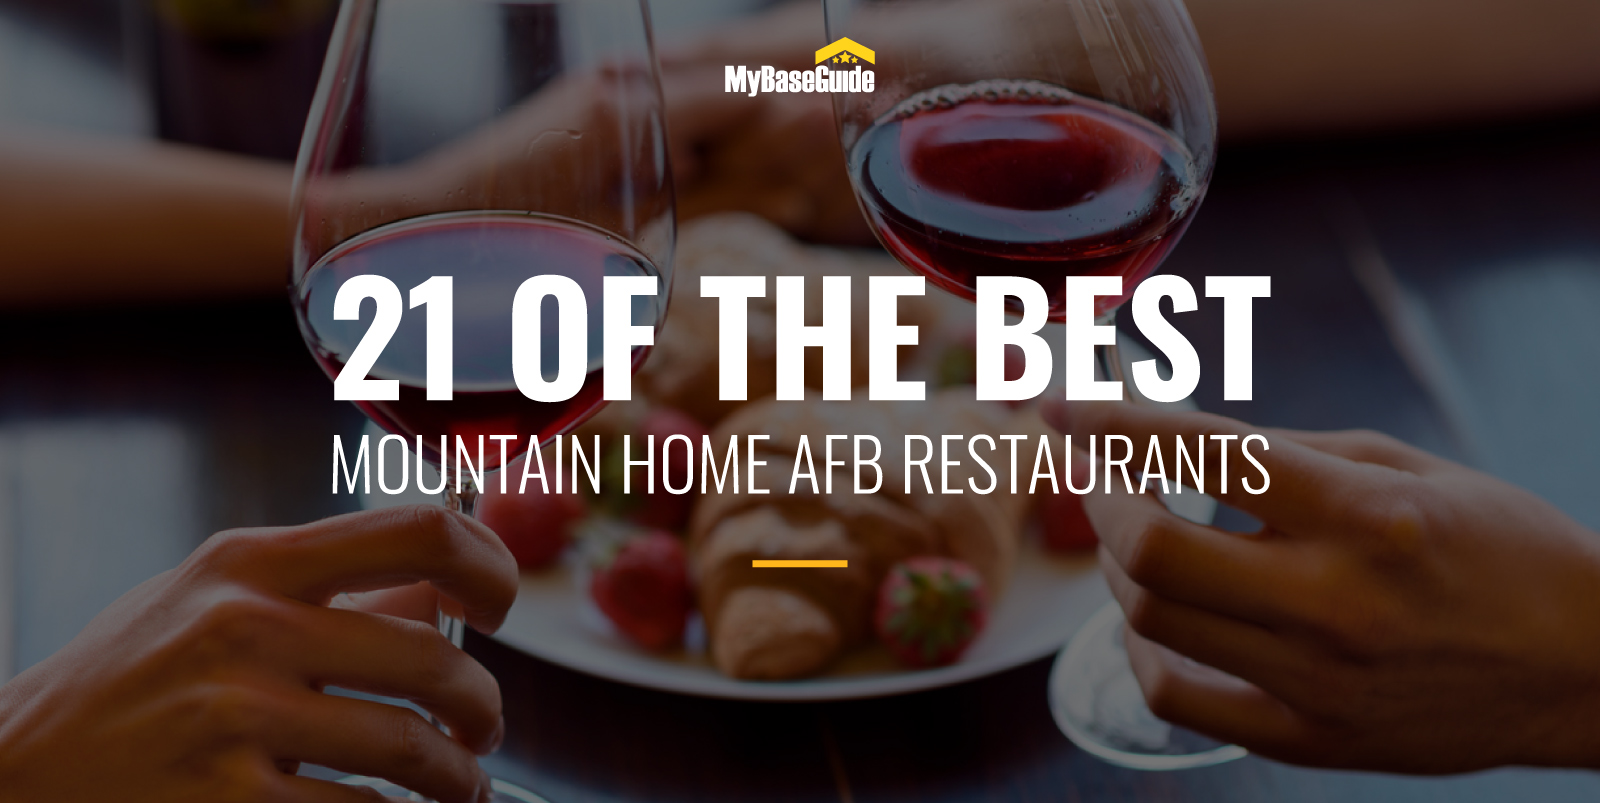 21 of the Best Mountain Home AFB Restaurants